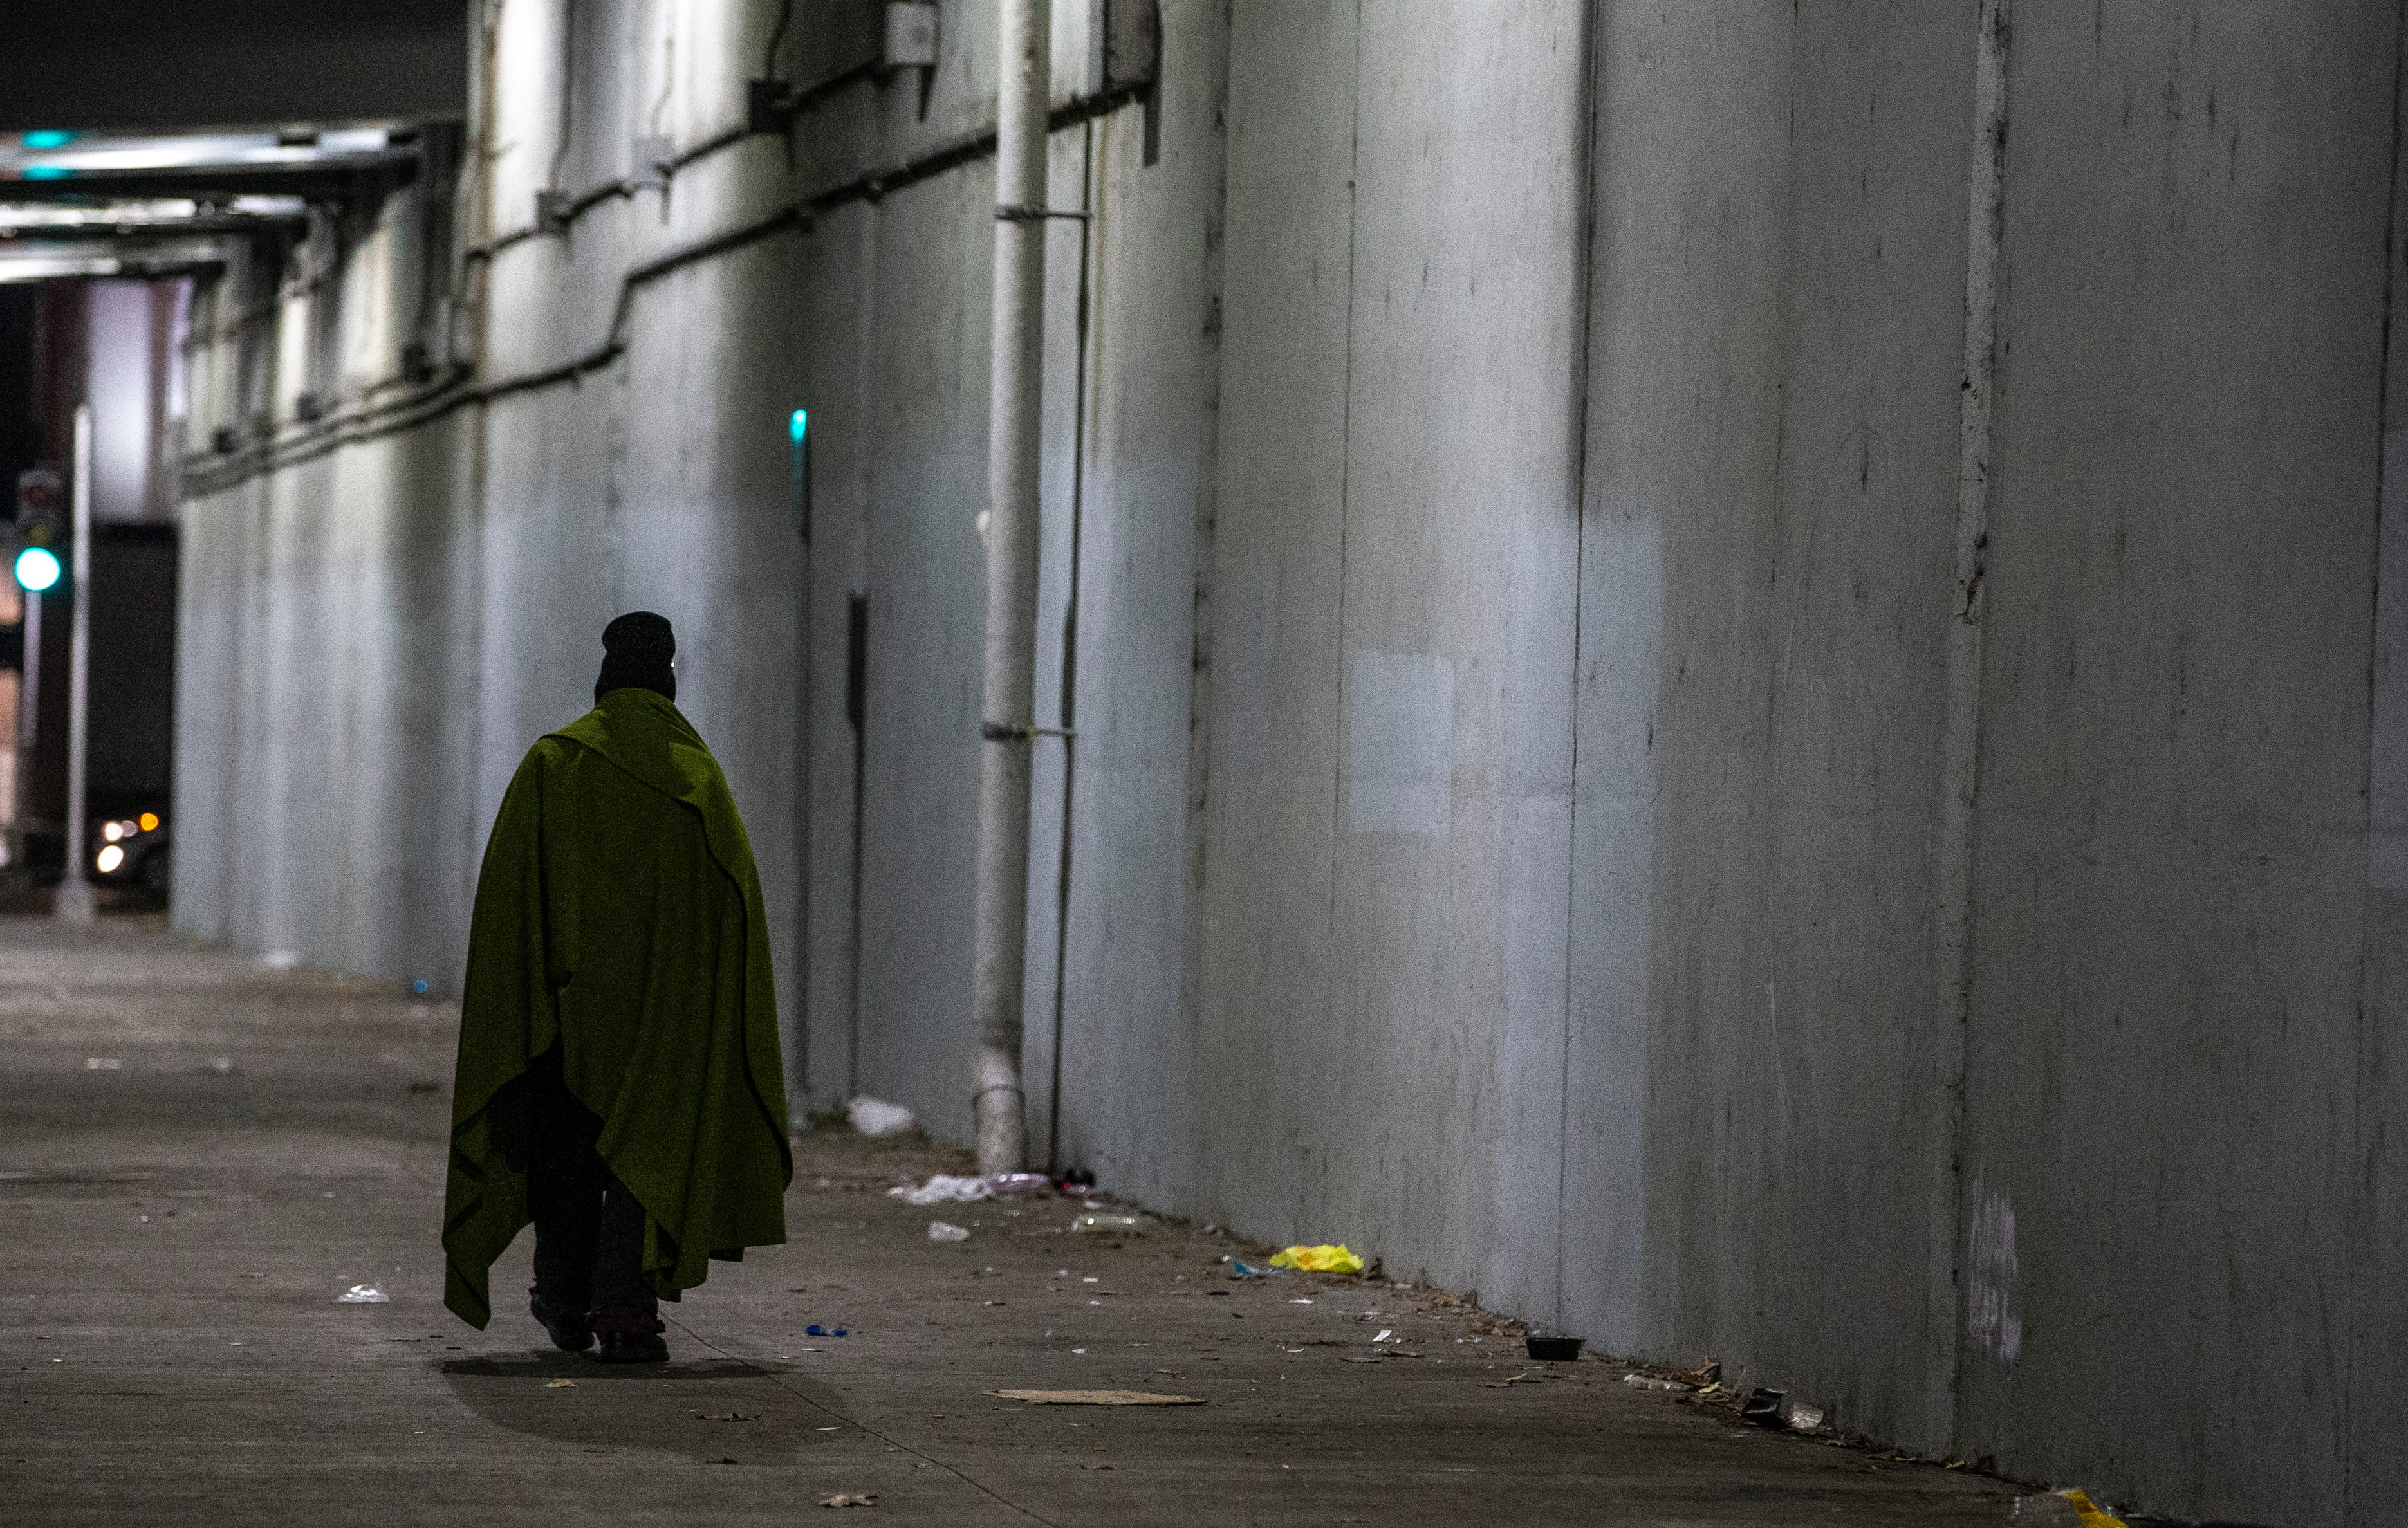 5:57 AM  A homeless man walked along Jefferson Street under the I-65 overpass, with a blanket around him on Jan. 30, 2020. Volunteers canvassed the area for the 2020 Street Count census of the homeless.